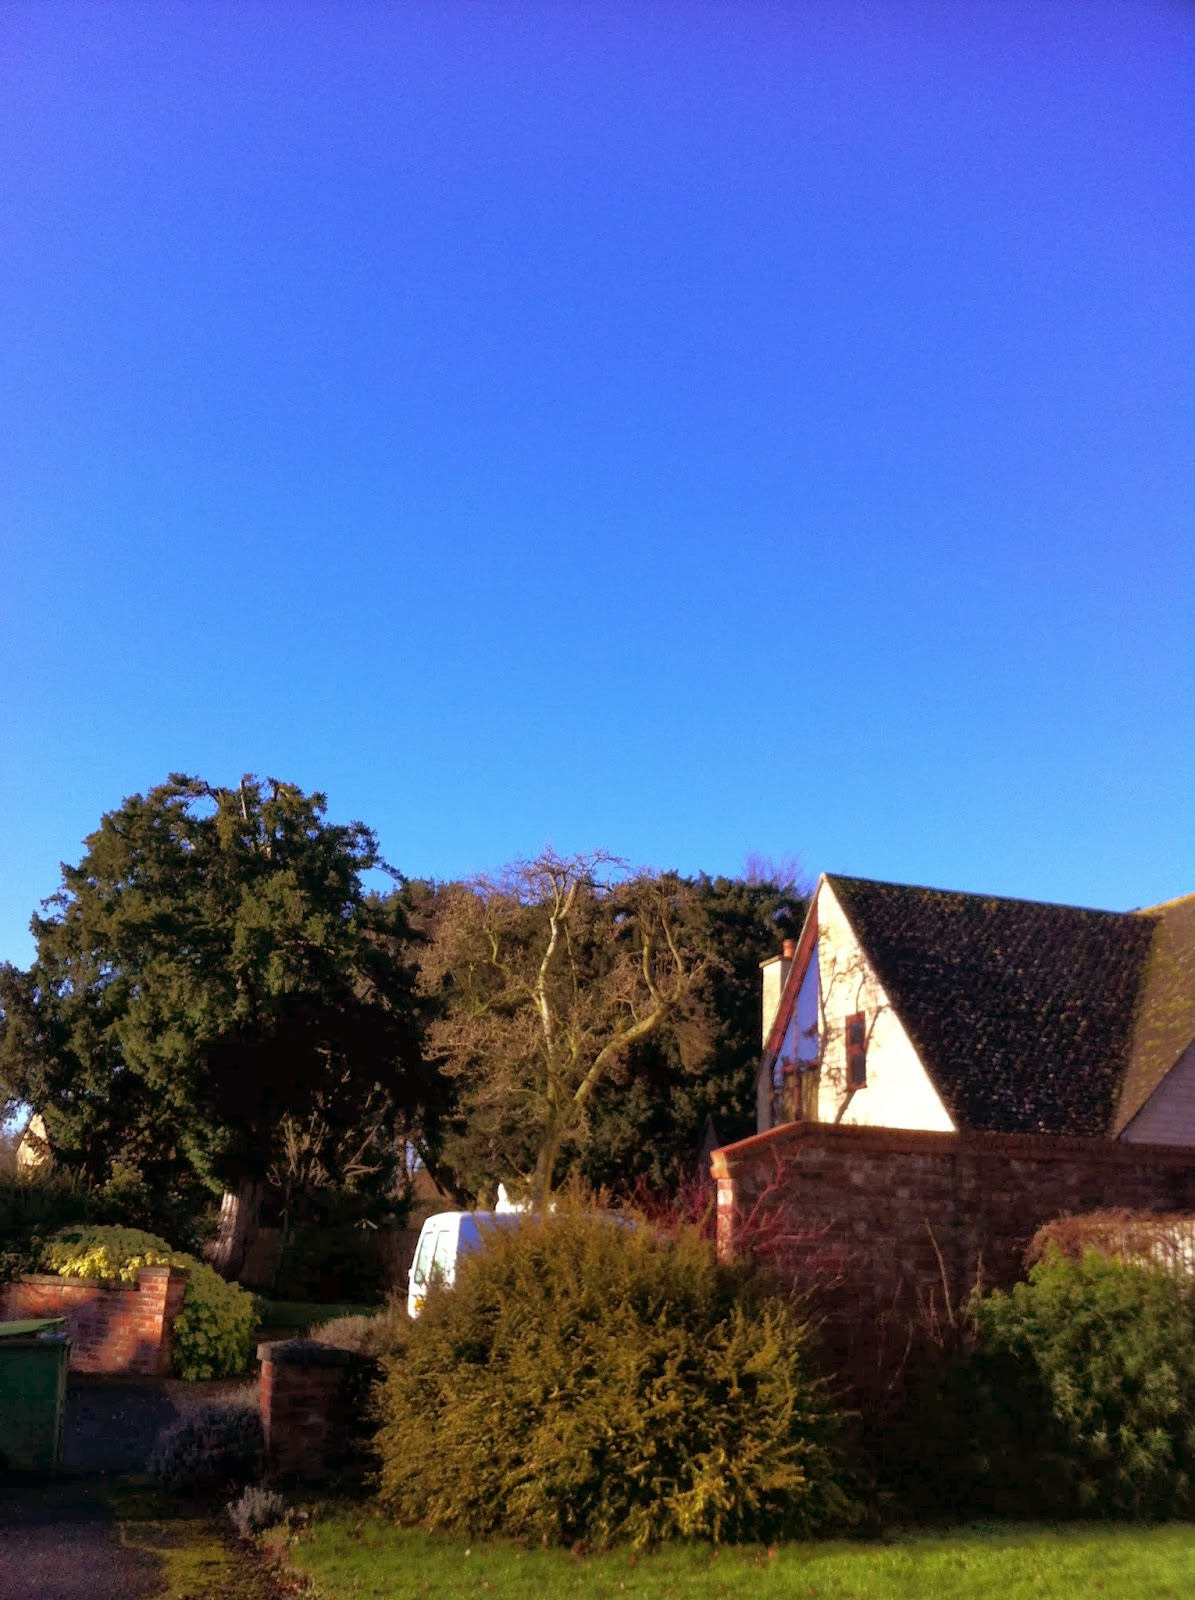 New-house-blue-sky-Gallery